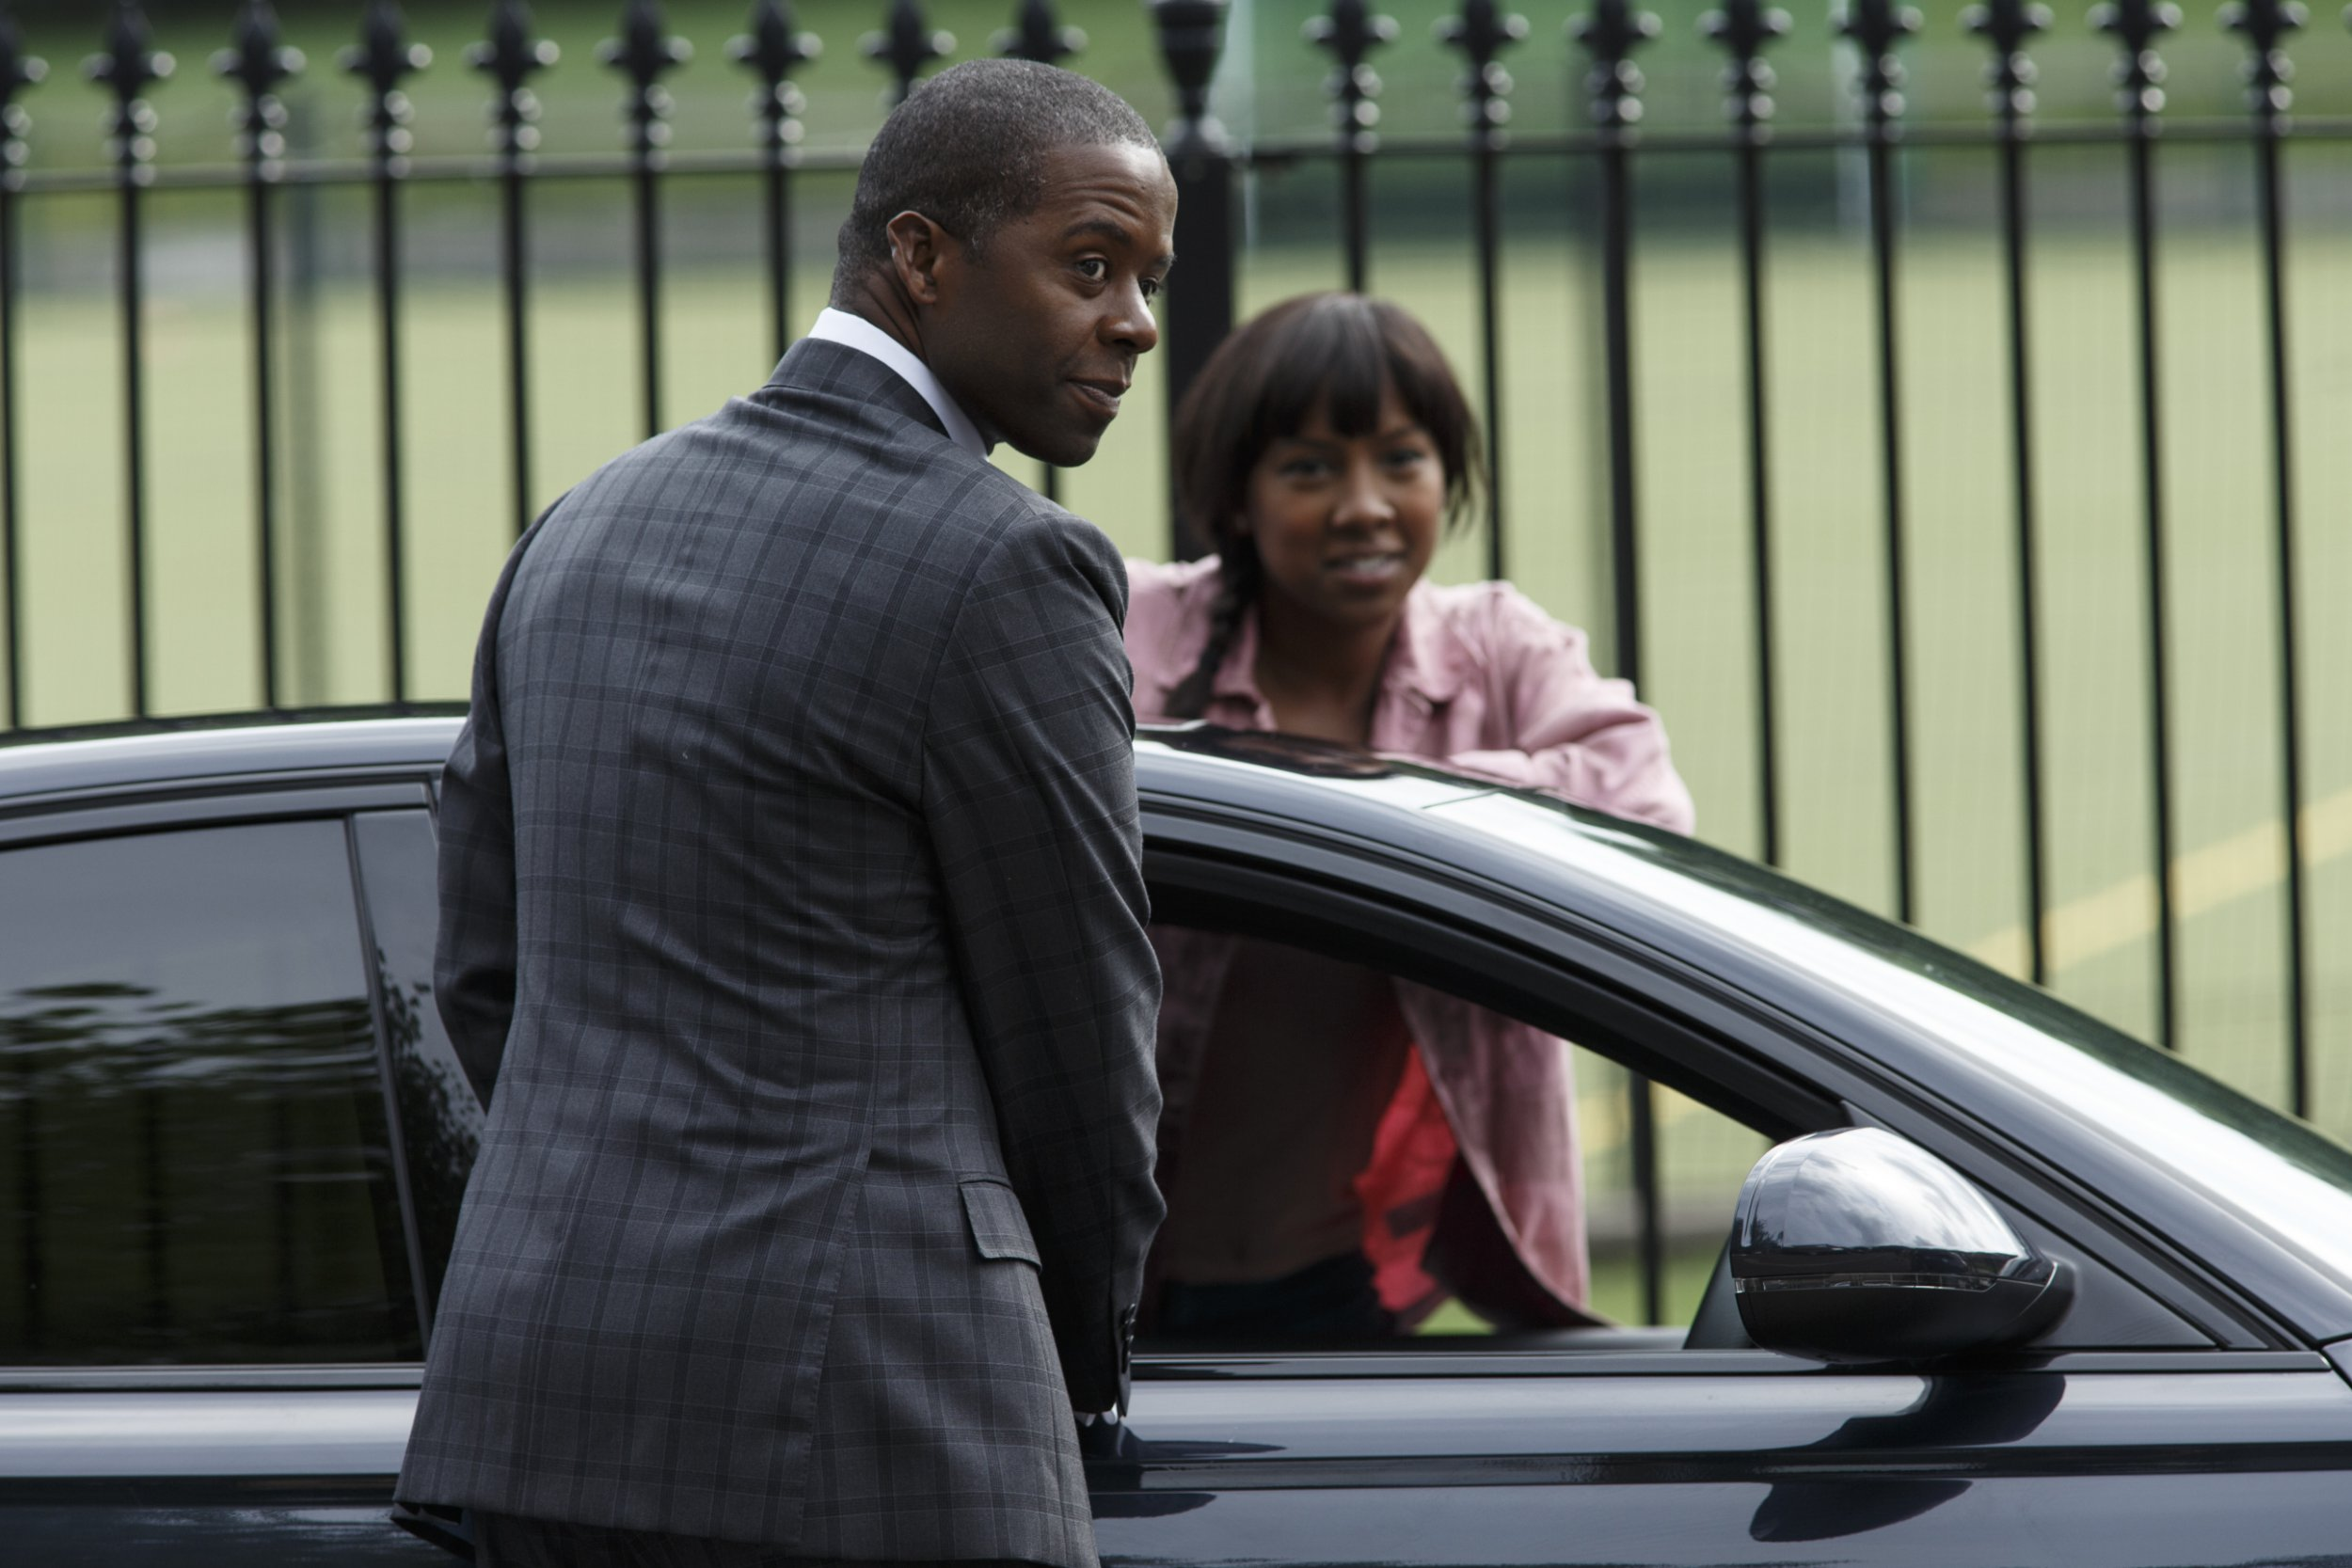 Trauma review: John Simm and Adrian Lester's game of cat and mouse gets off to a strong start